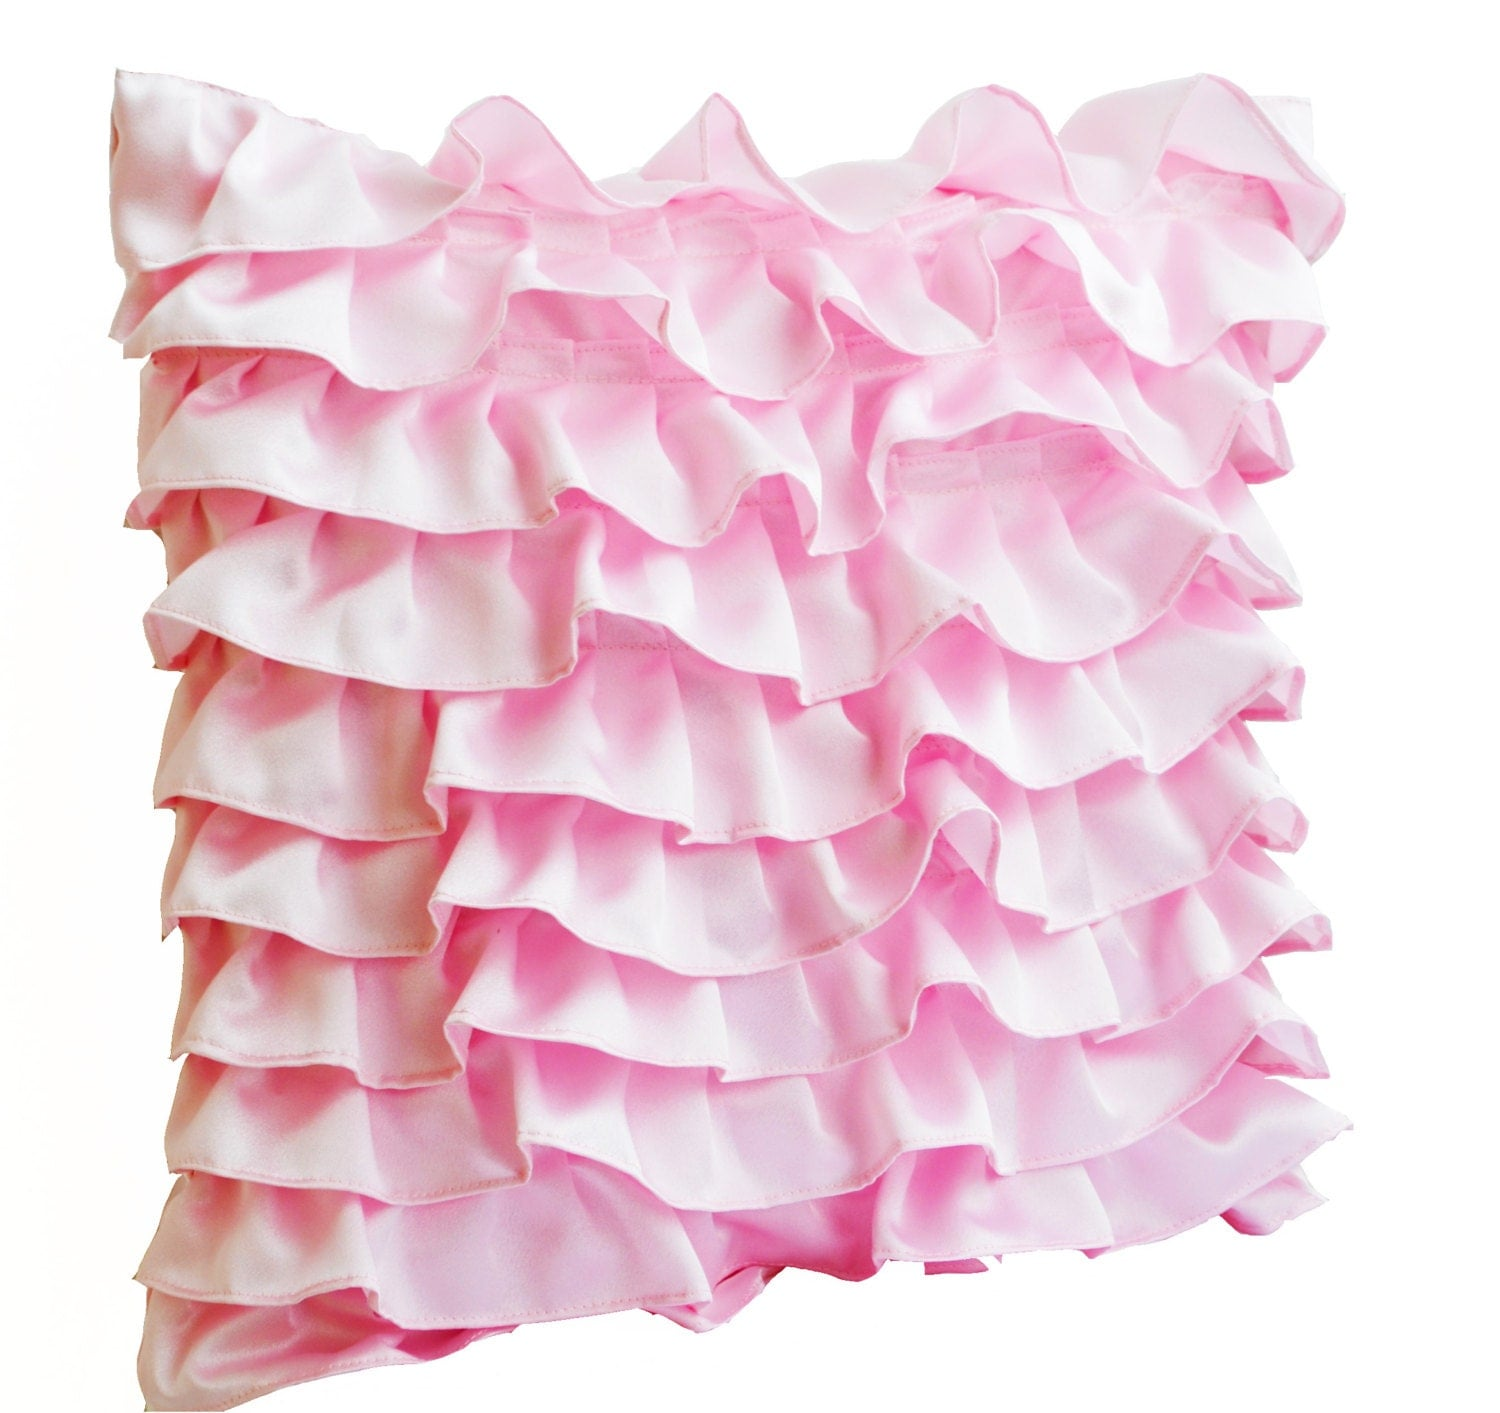 Decorative pillow in Soft Pink Satin with Ruffles Decorative